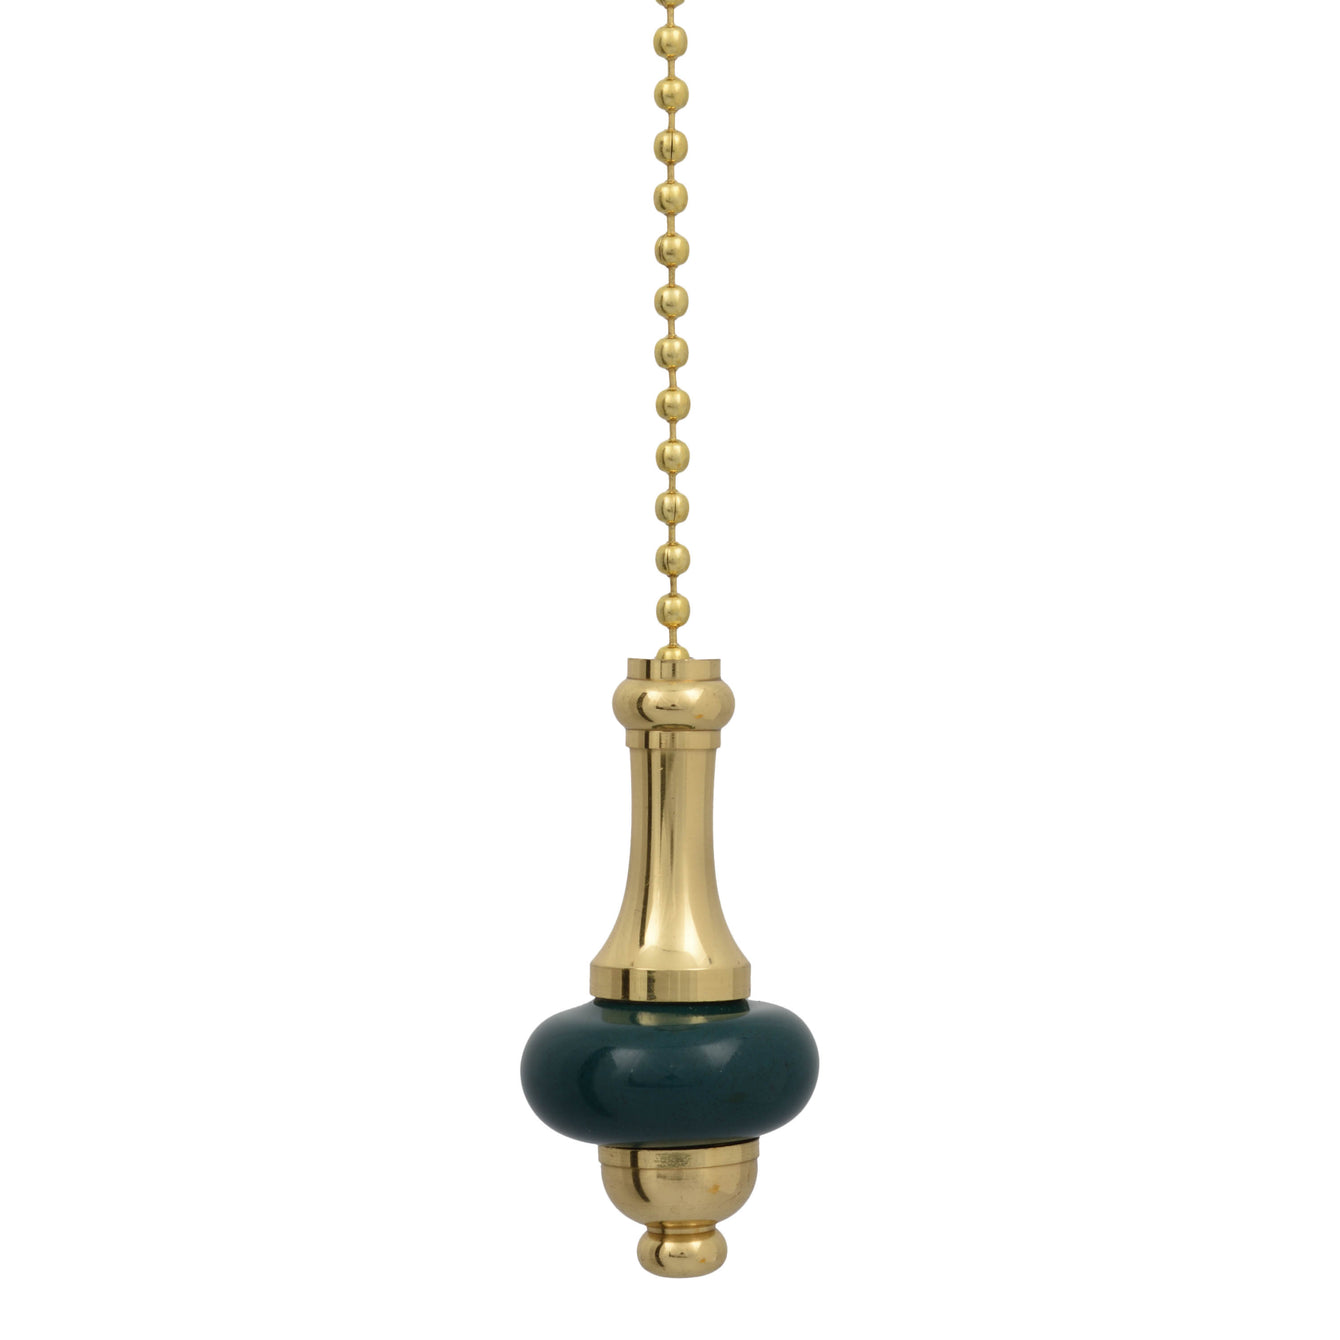 ElekTek Light Pull Chain Brass Ceramic Disc With 80cm Matching Chain - Buy It Better Pale Blue